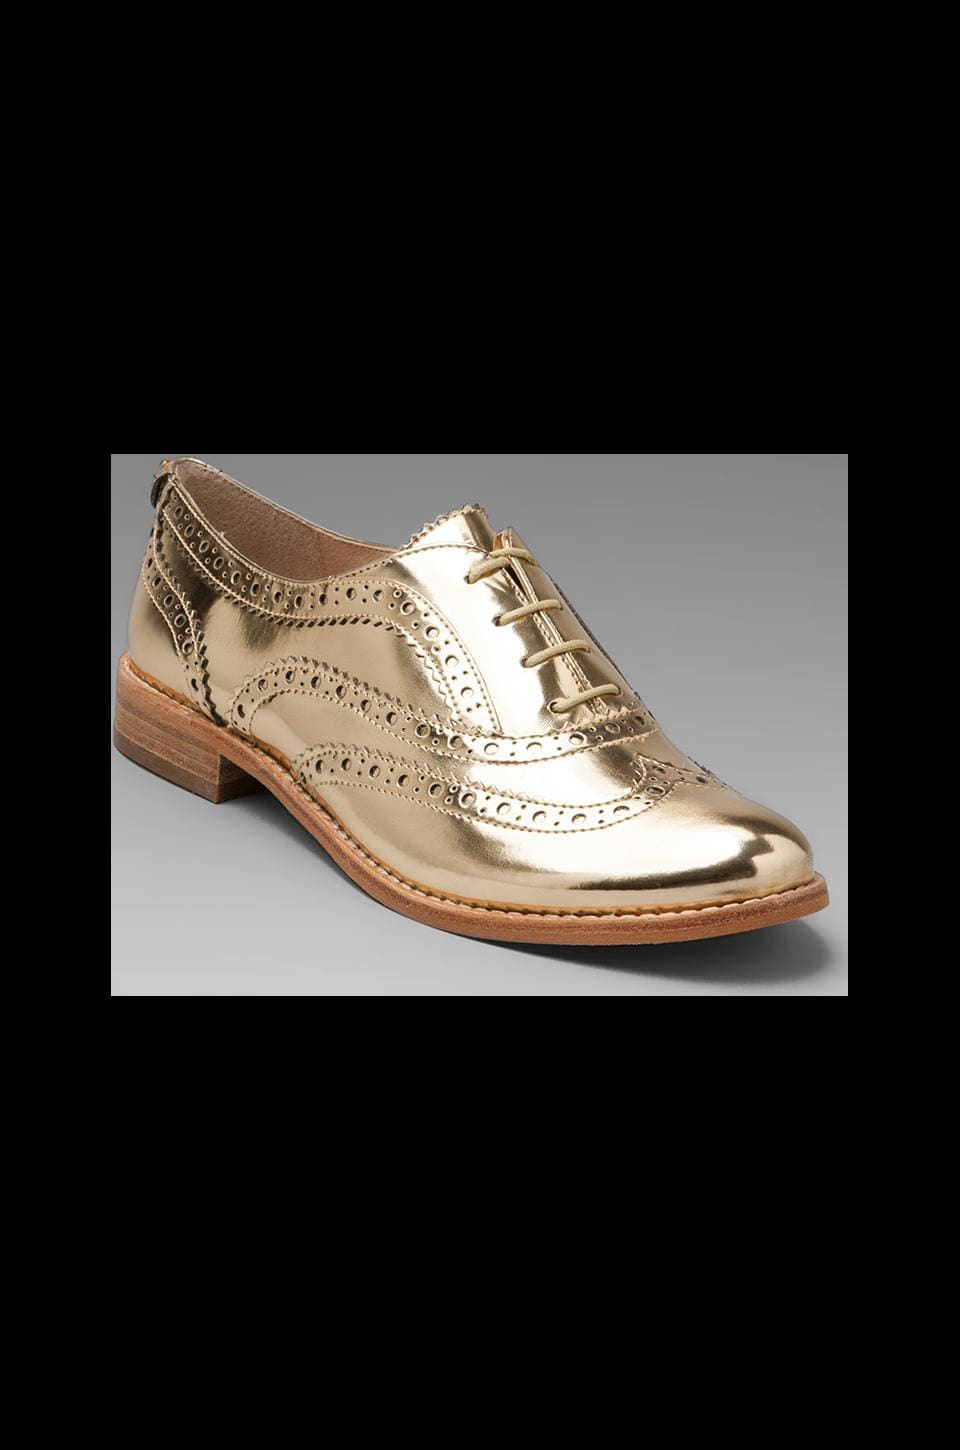 Sam Edelman Jerome Oxford Flat in Effegi Gold